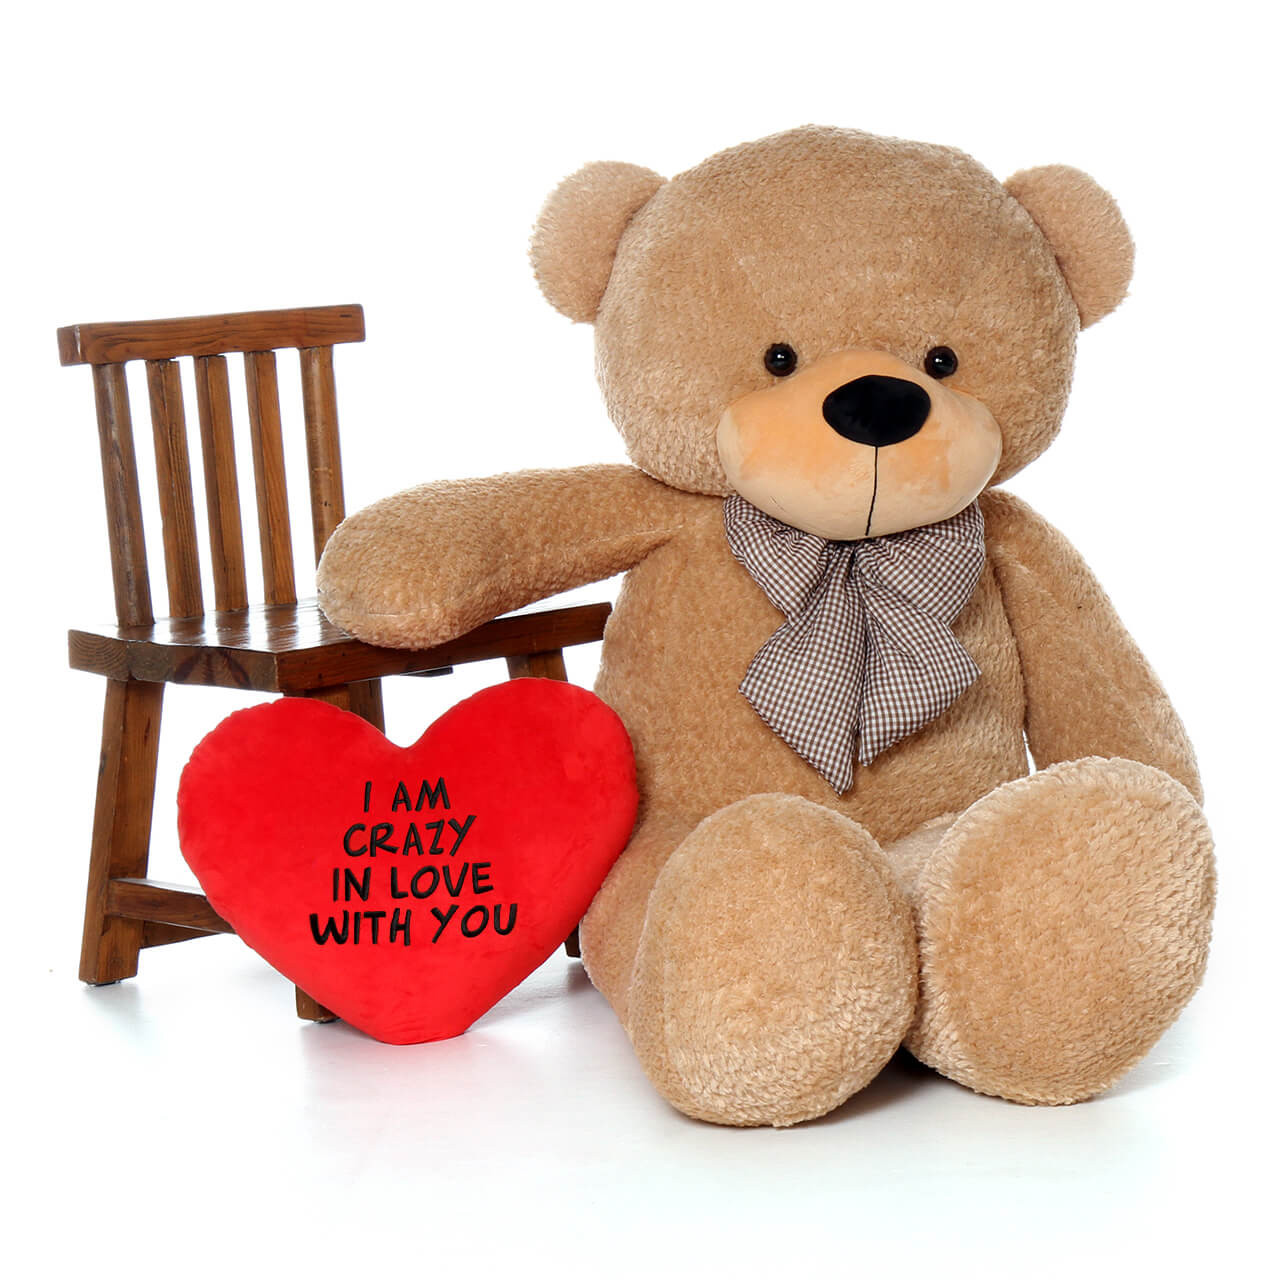 I AM CRAZY IN LOVE WITH YOU best valentine gift